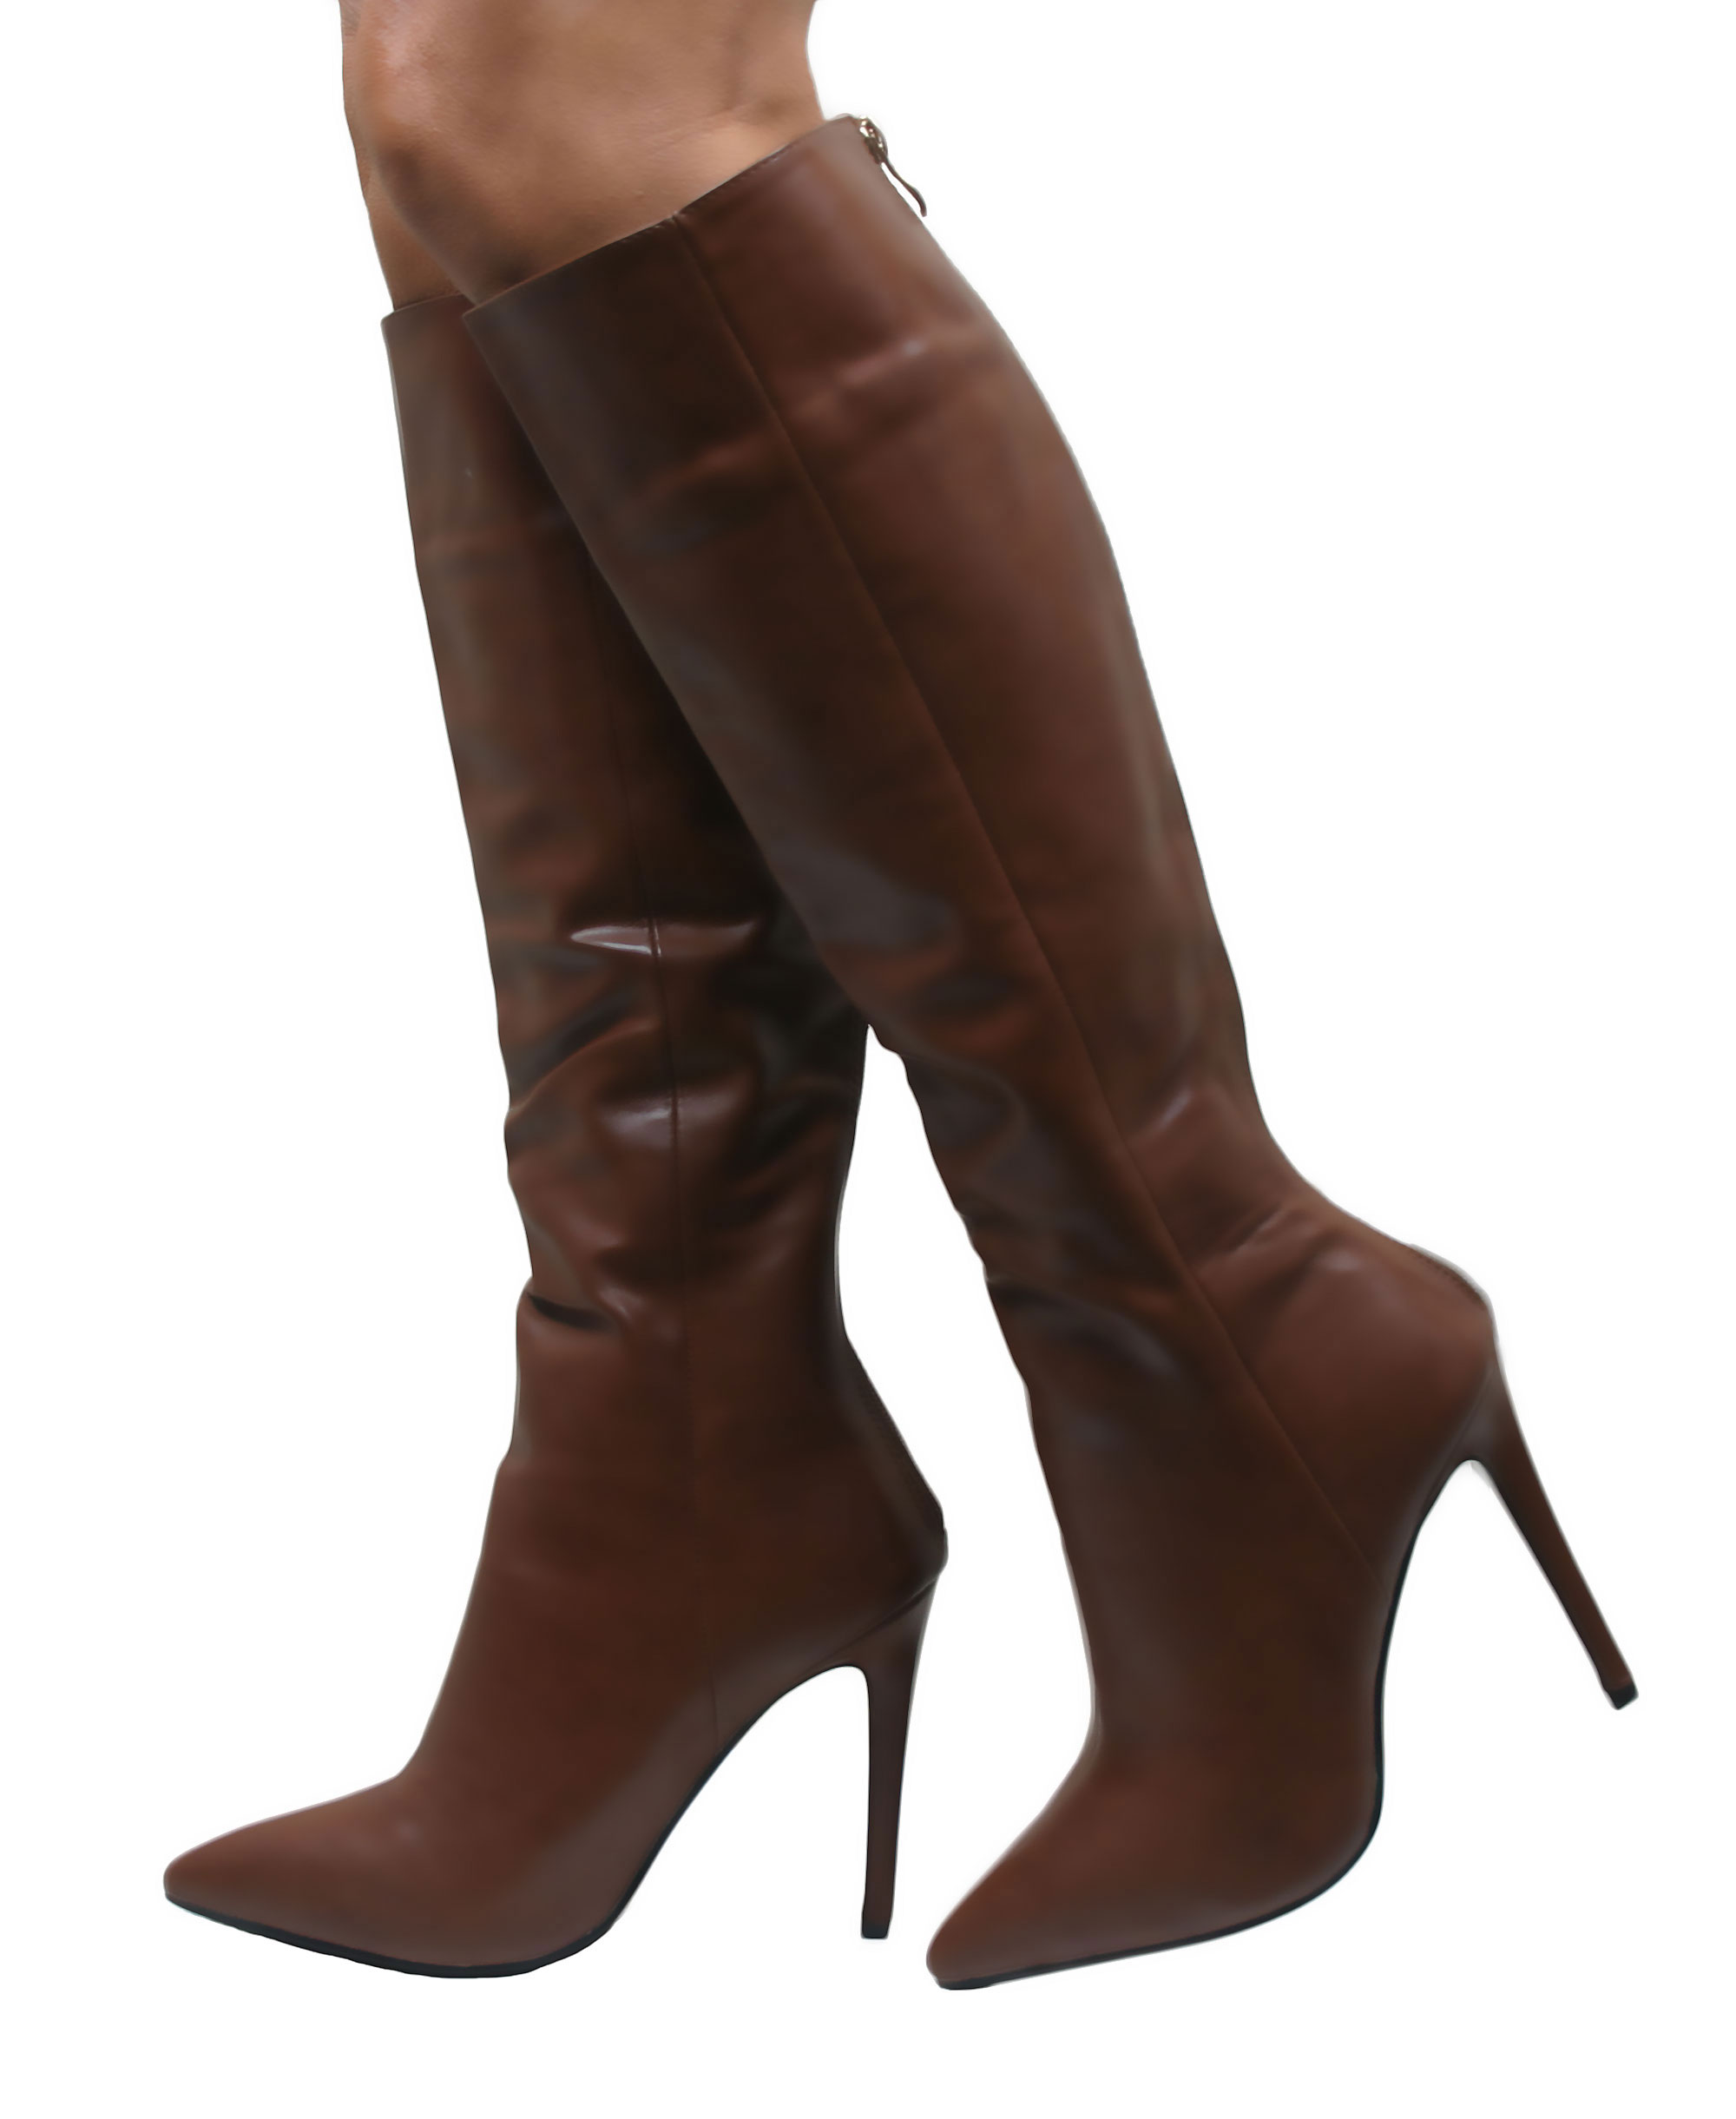 LADIES STILETTO HEEL WOMENS KNEE HIGH POINTED LONG BOOTS FAUX ...